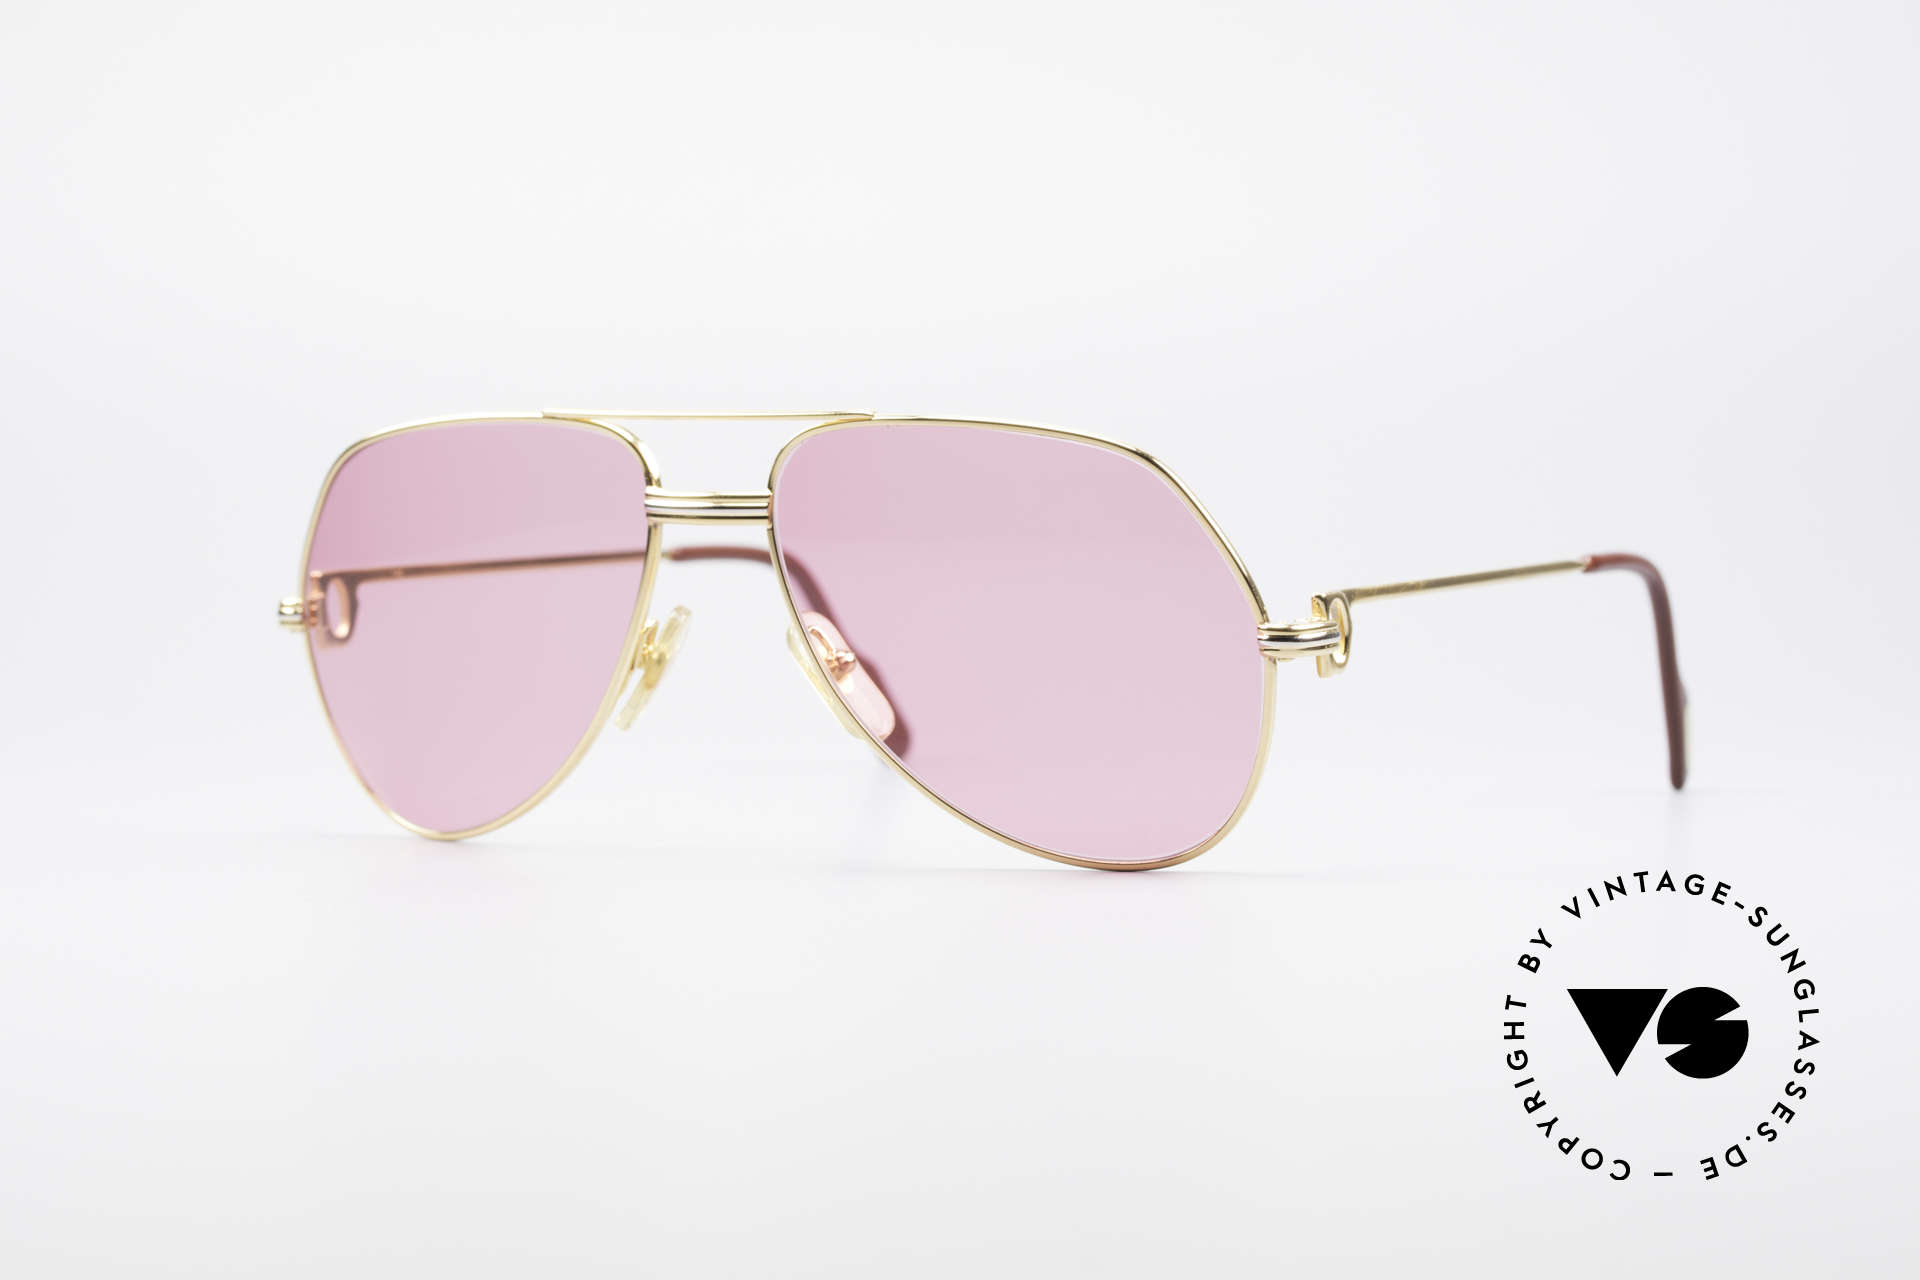 Cartier Vendome LC - M Michael Douglas 80's Shades, Vendome = the most famous eyewear design by CARTIER, Made for Men and Women